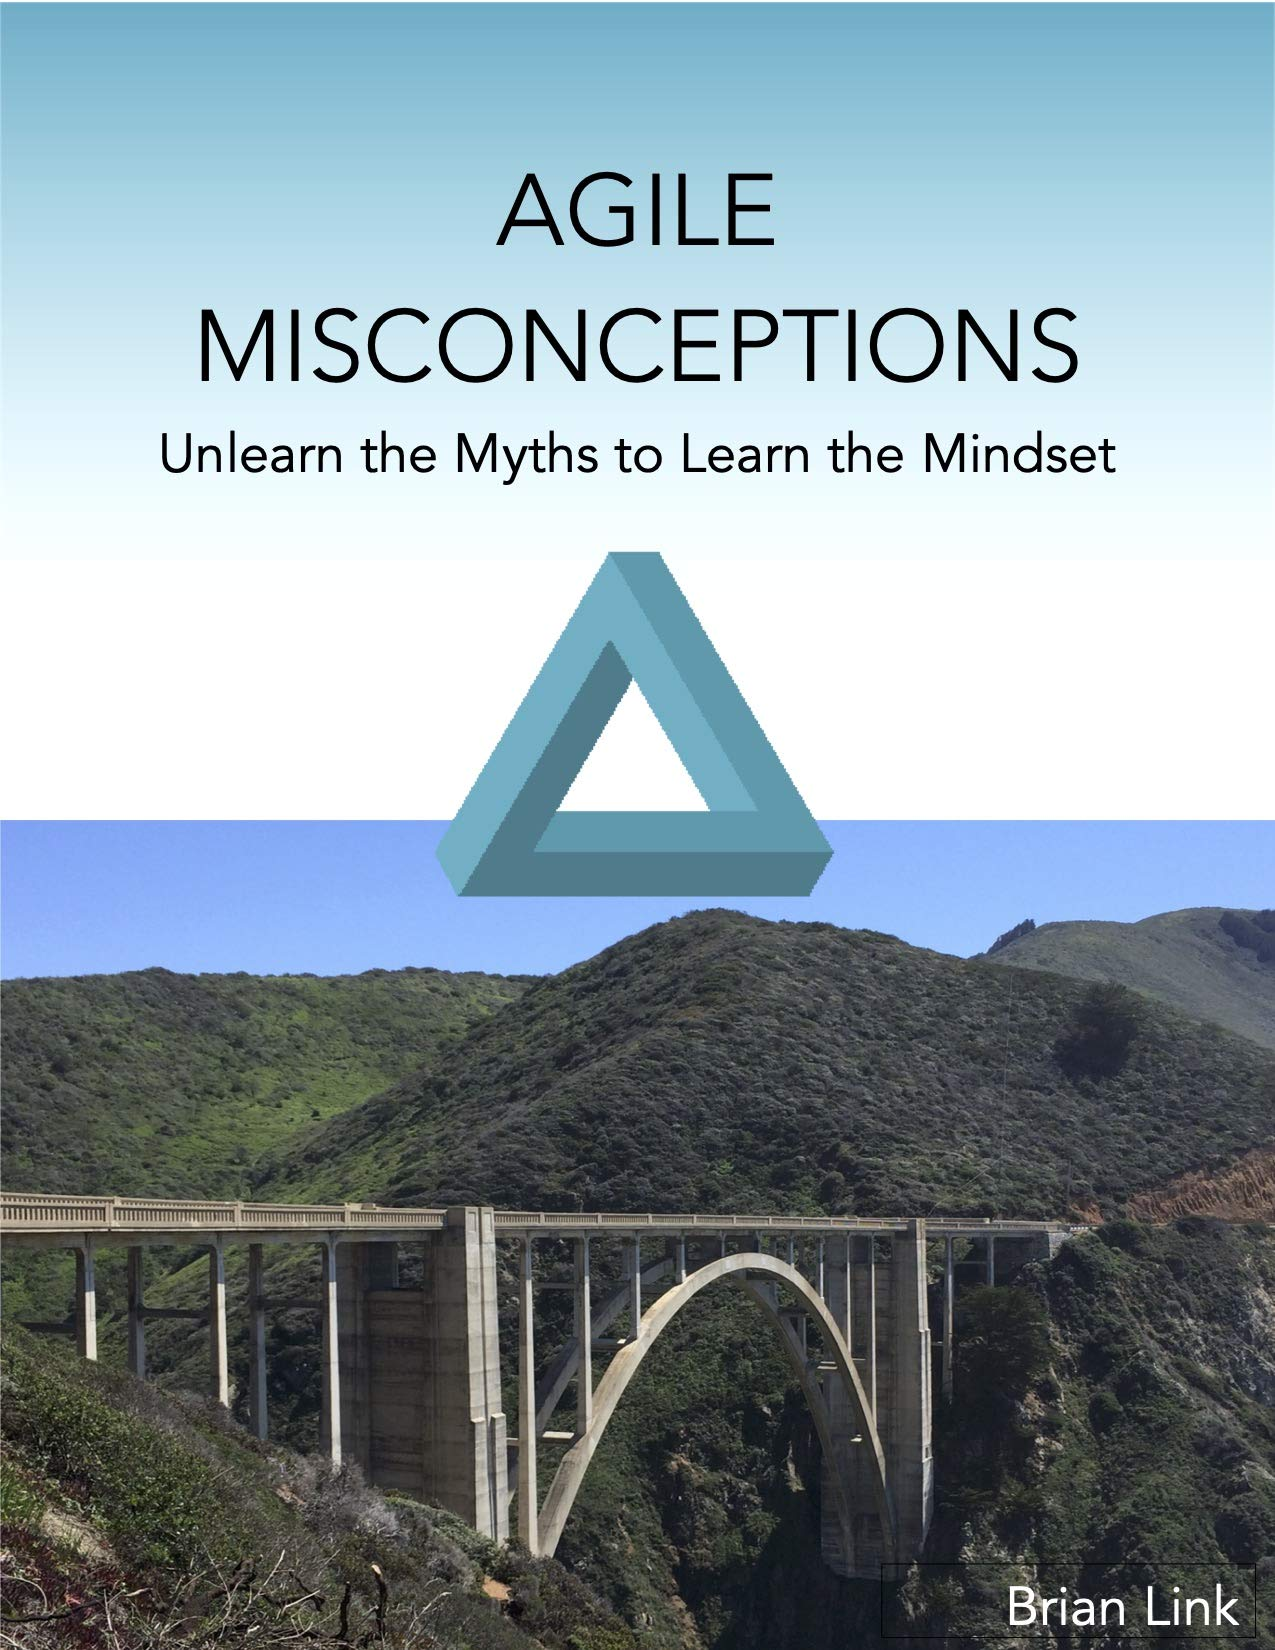 Agile Misconceptions: Unlearn the Myths to Learn the Mindset